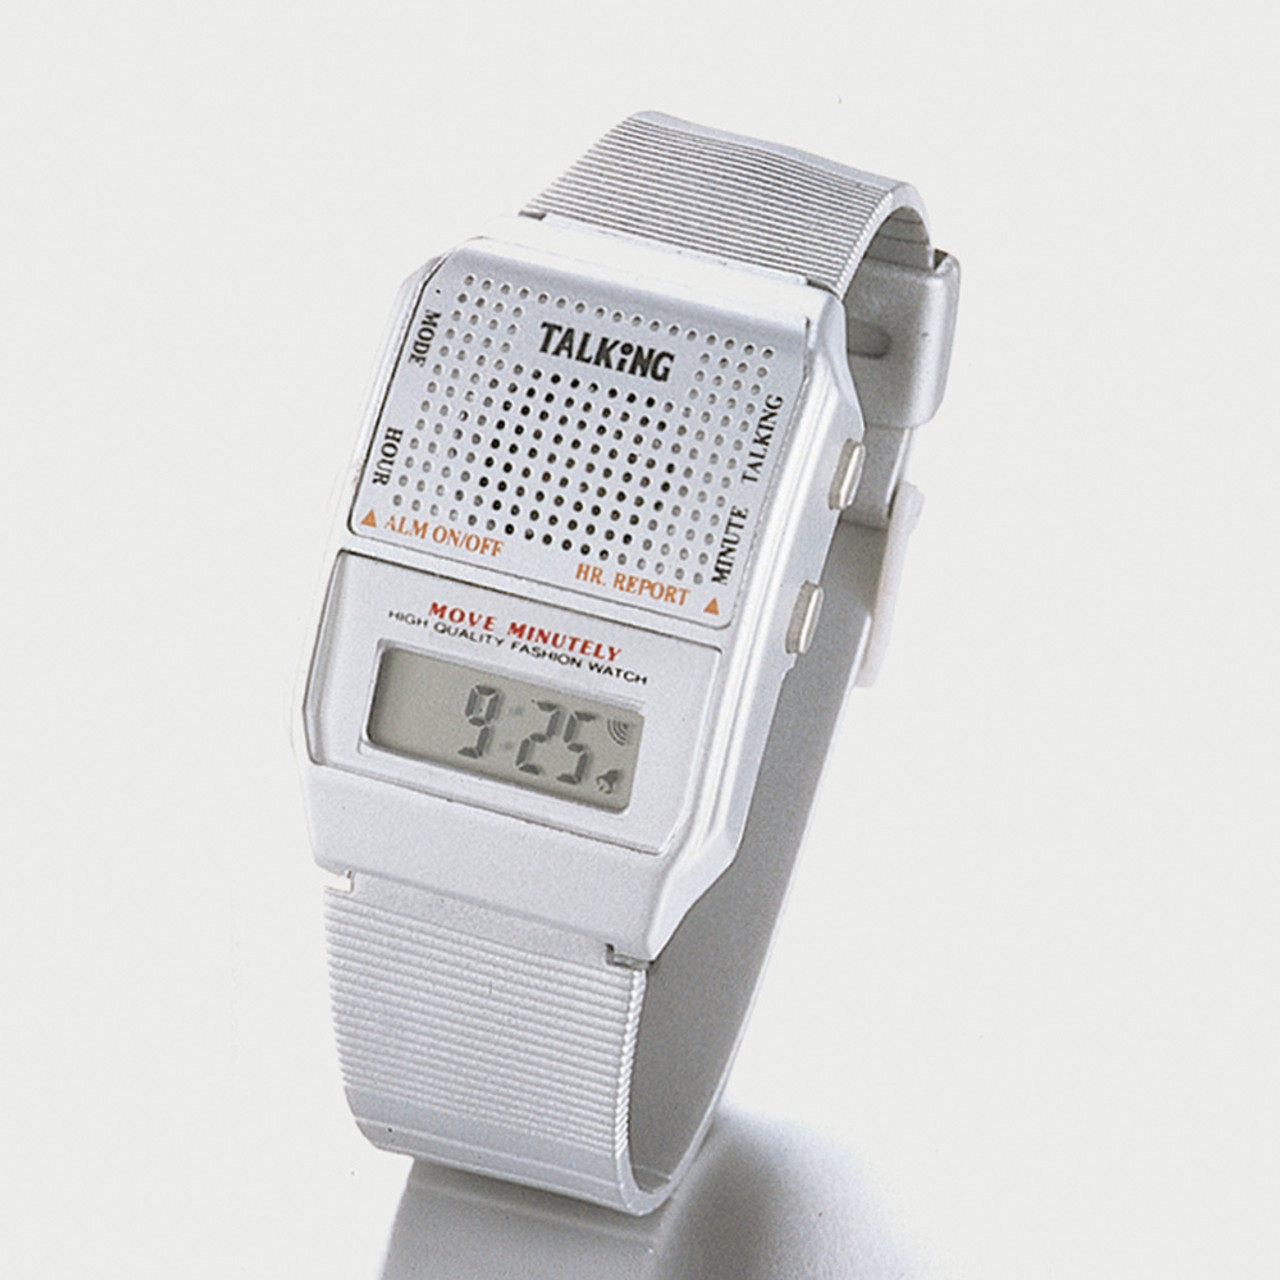 Silver Talking Watch